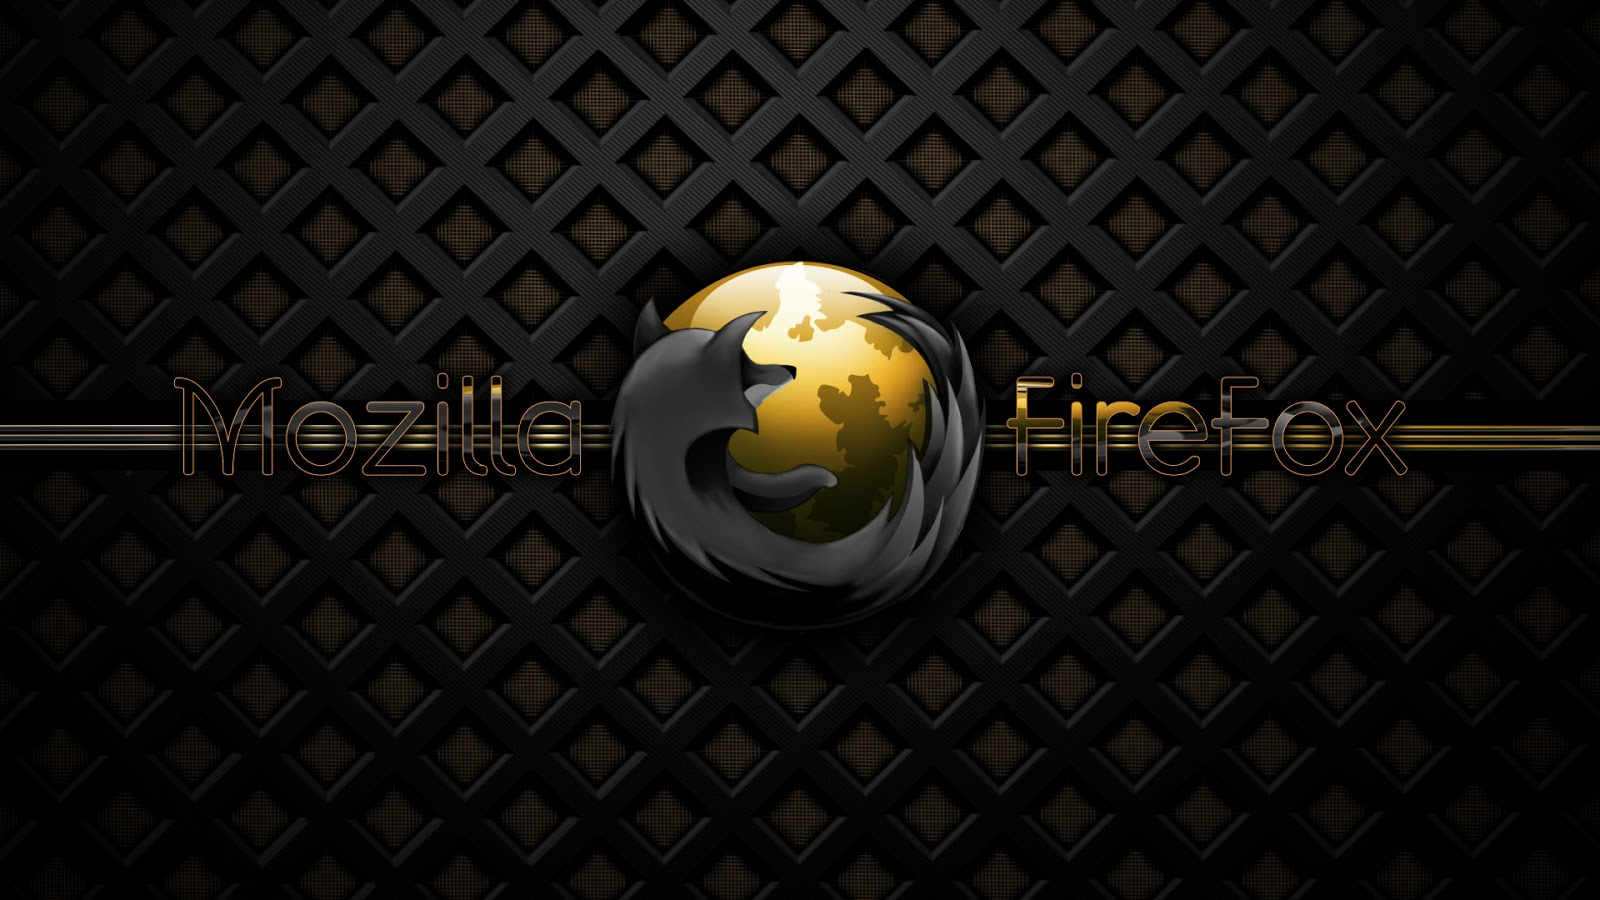 Best 7 Mozilla Firefox Wallpaper Download 1600x900